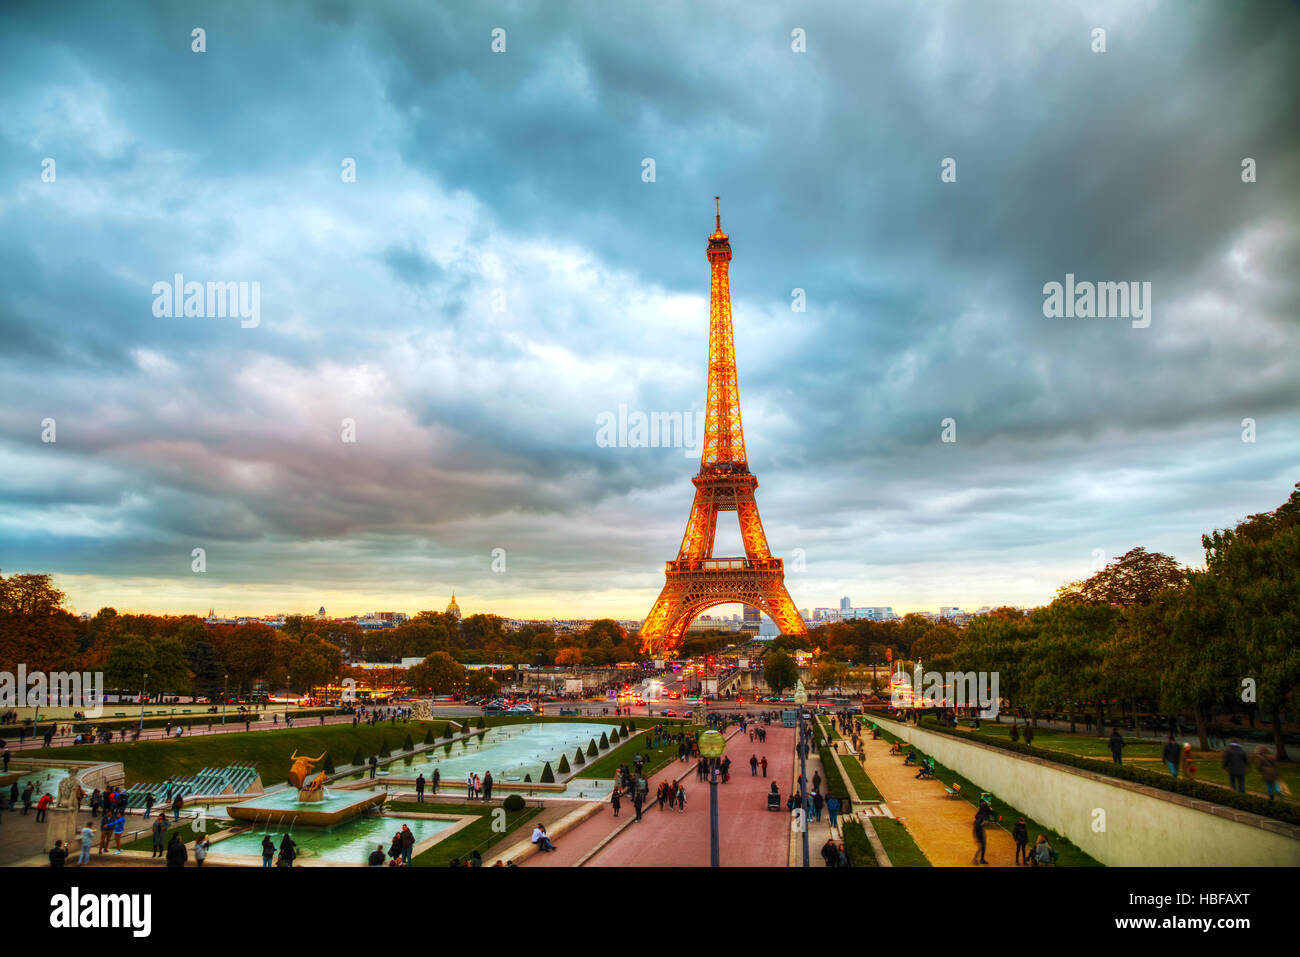 PARIS - NOVEMBER 5: Cityscape with the Eiffel tower and people on November 5, 2016 in Paris, France. - Stock Image